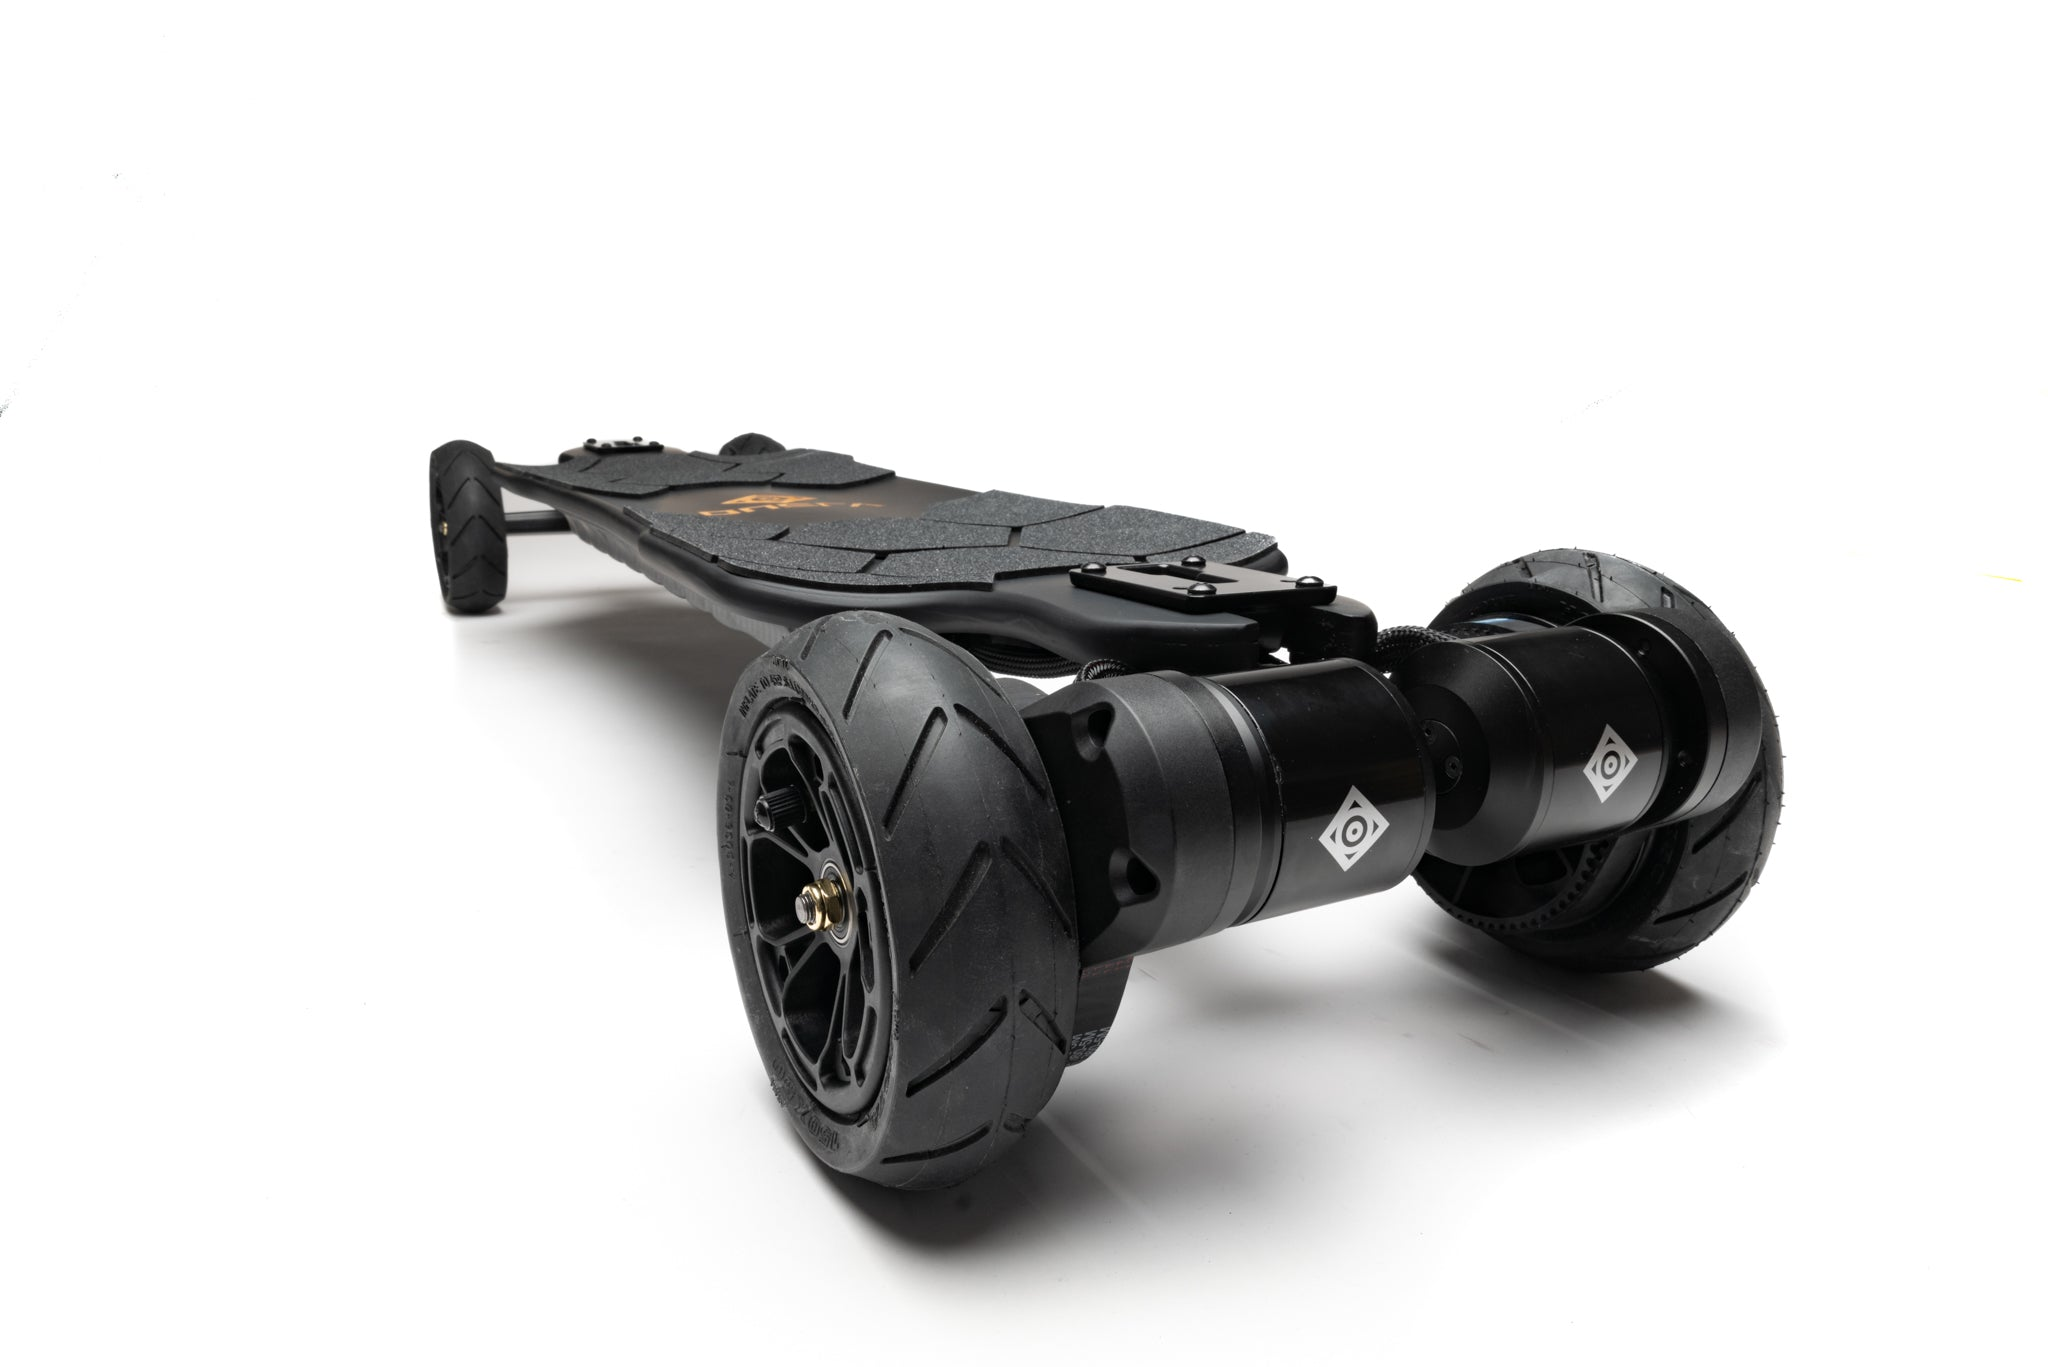 ONSRA BLACK Carve AT 2 - All Terrain Electric Skateboard